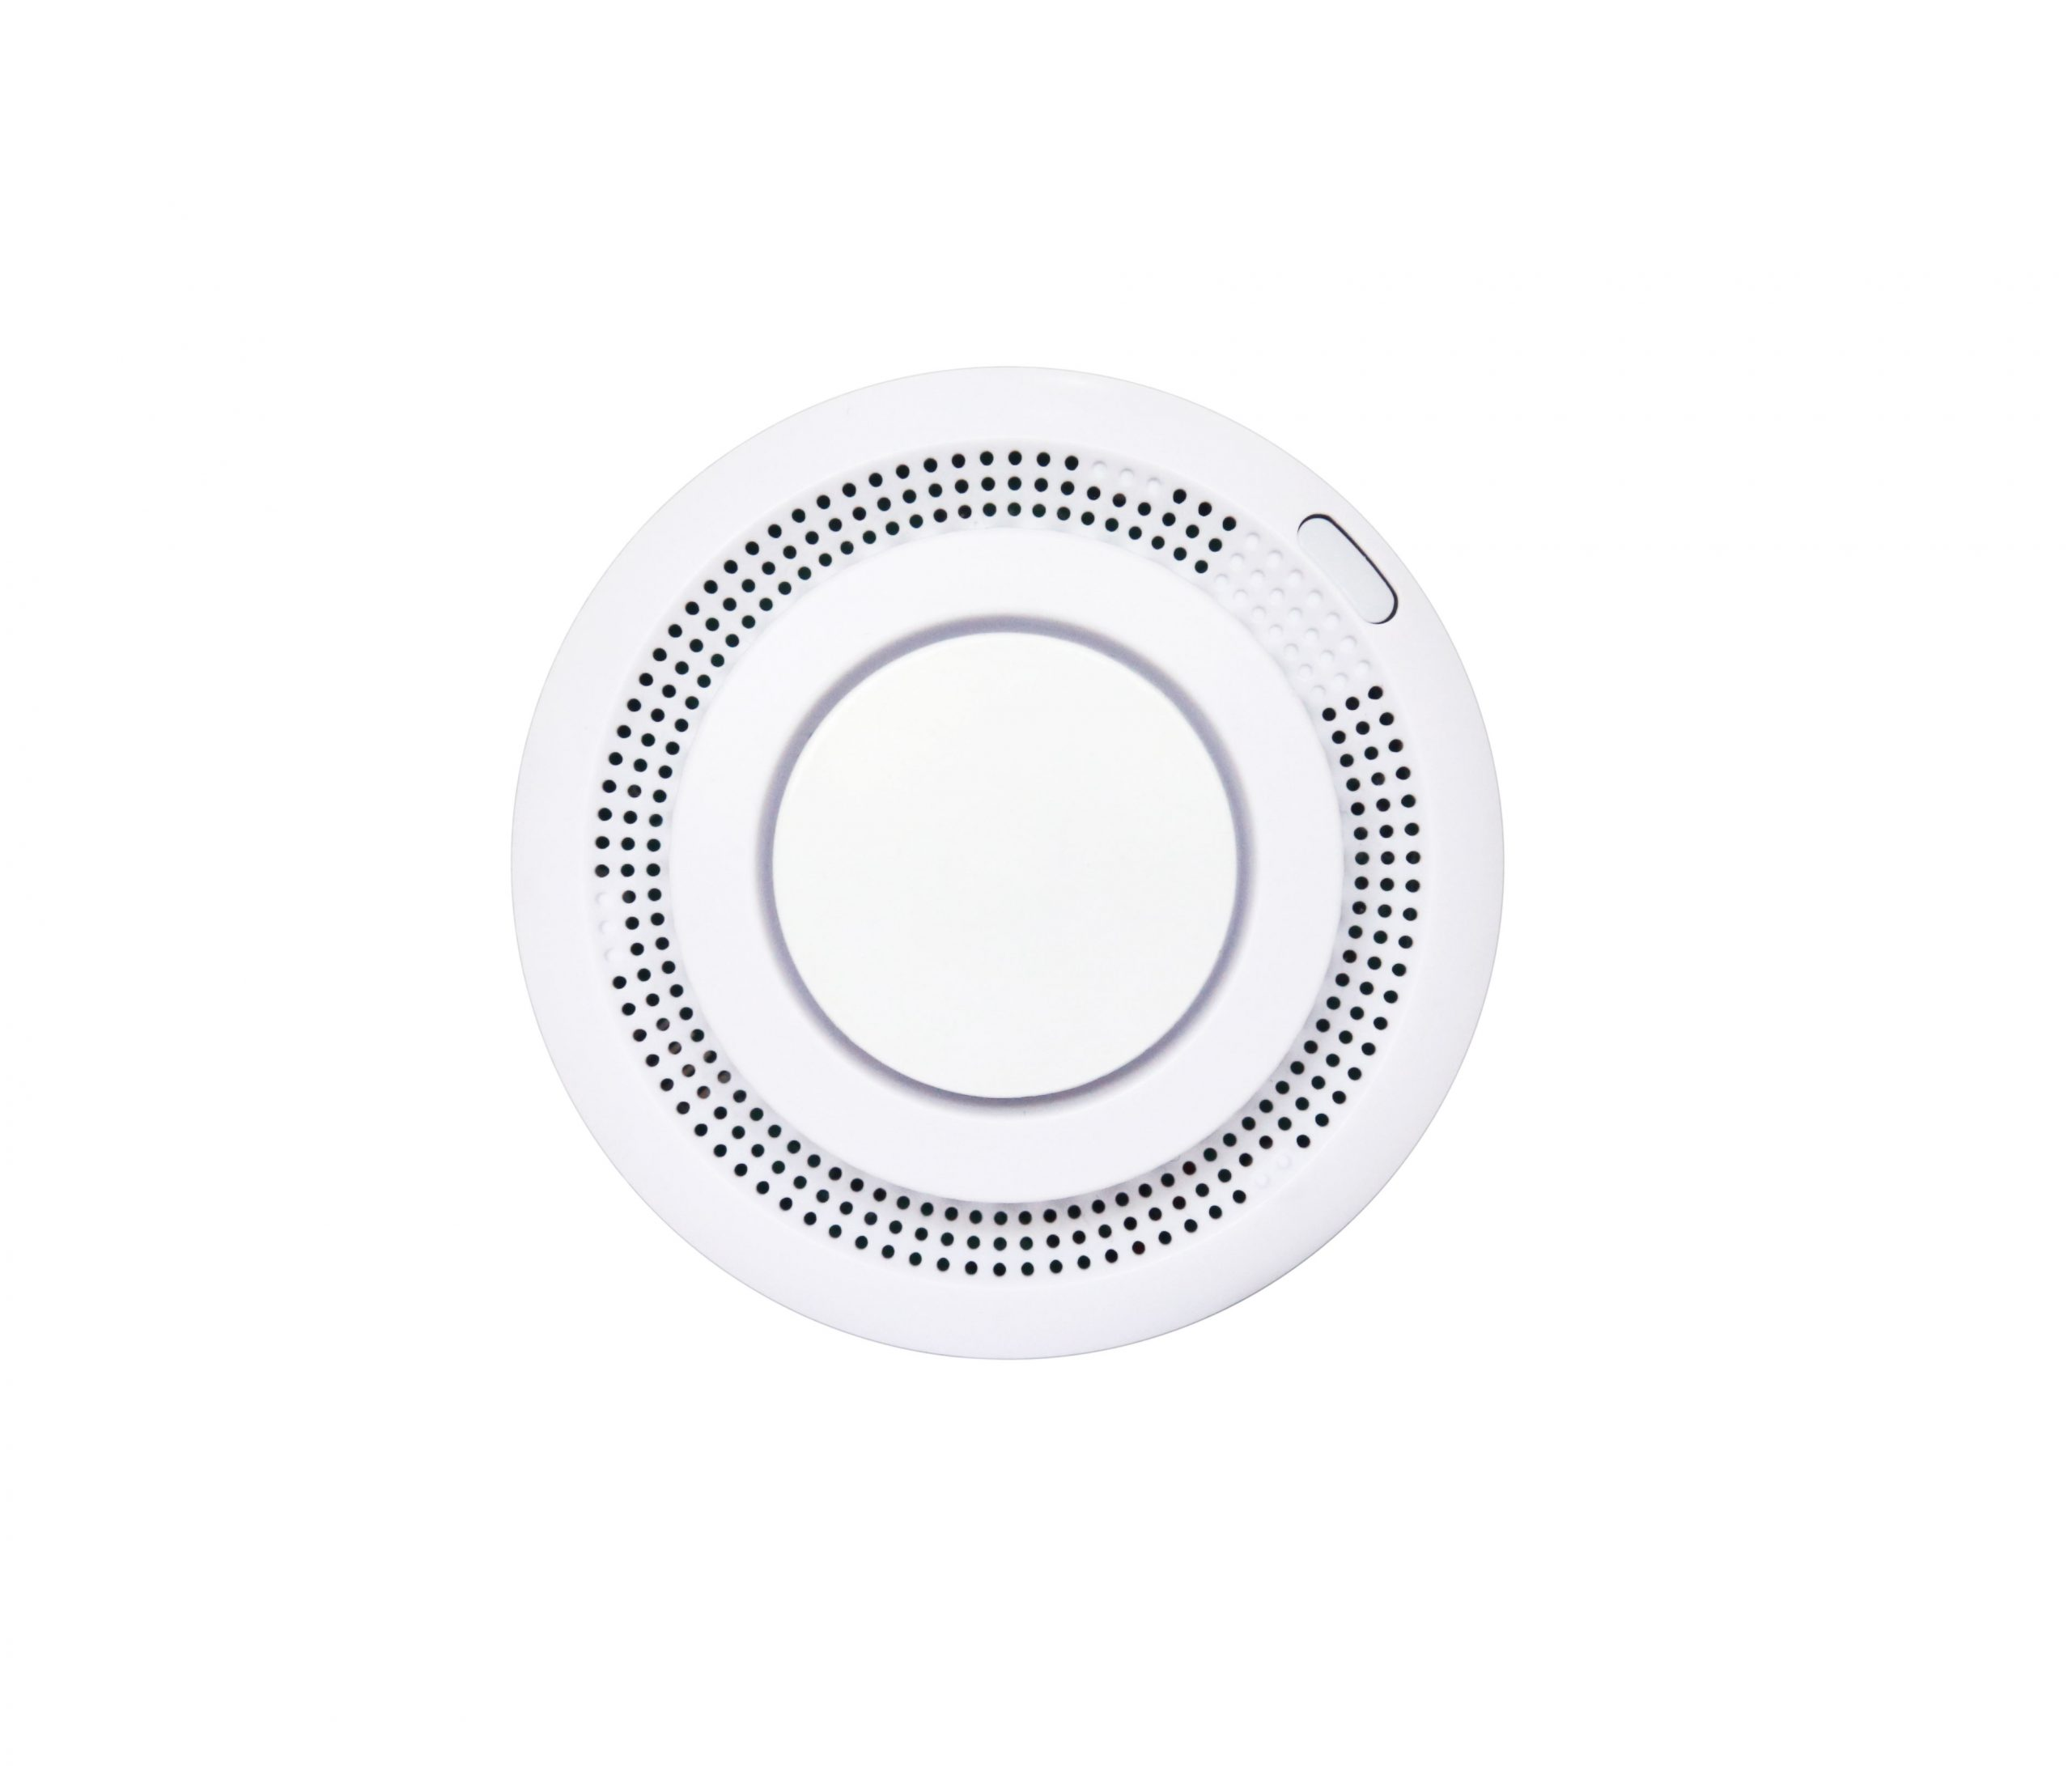 Enerna IoTech Smart WiFi Wireless Smoke Fire Alarm Detector Sensor